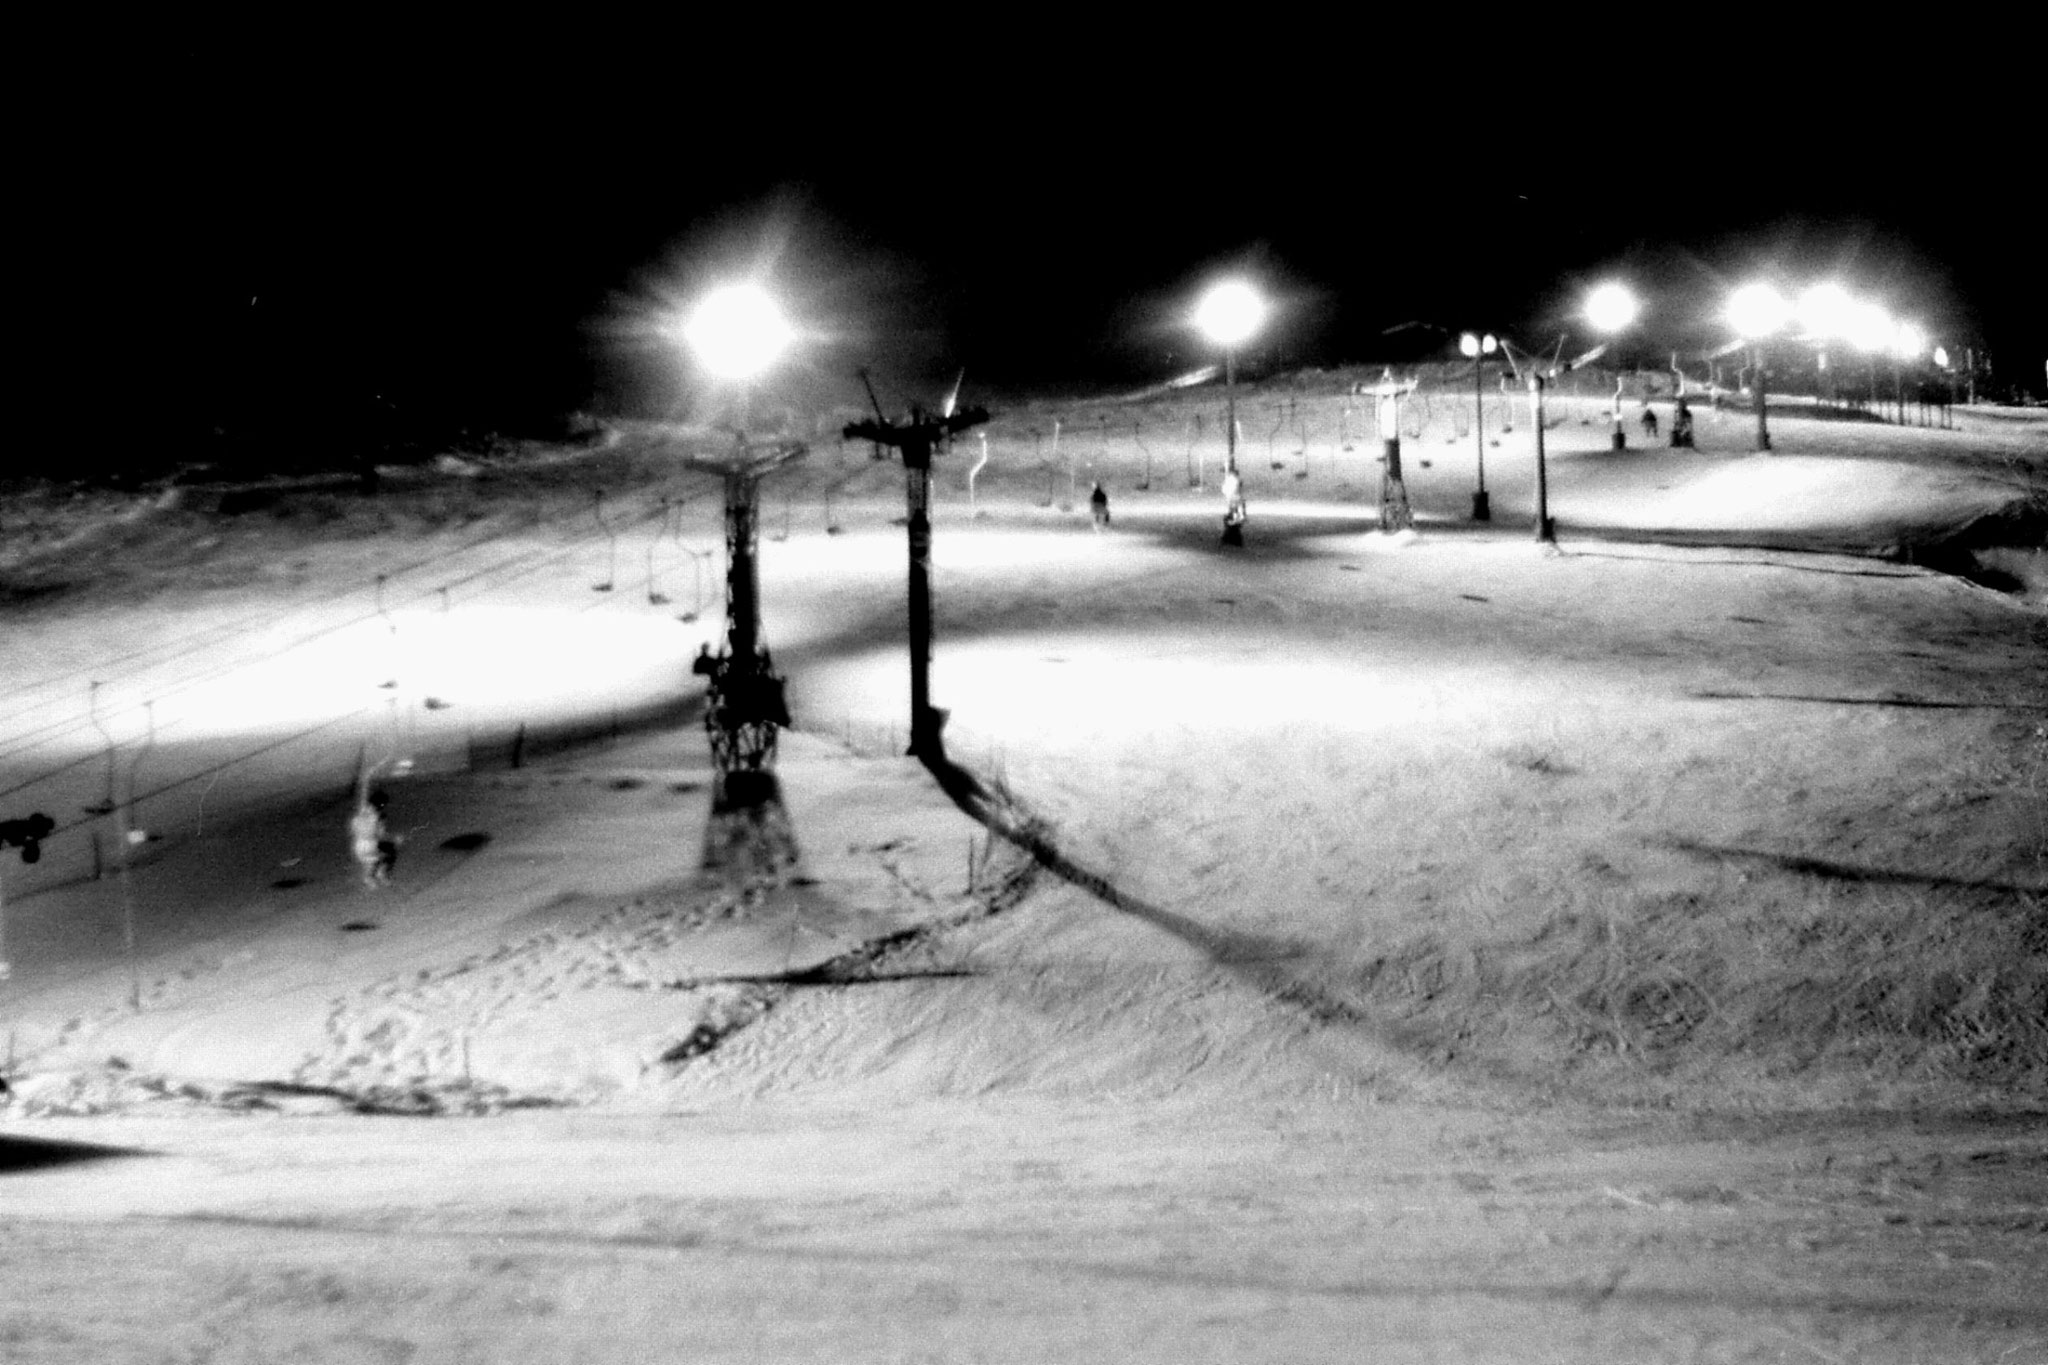 11/1/1989: 2: Floodlit ski slope outside hostel at Asahigawa